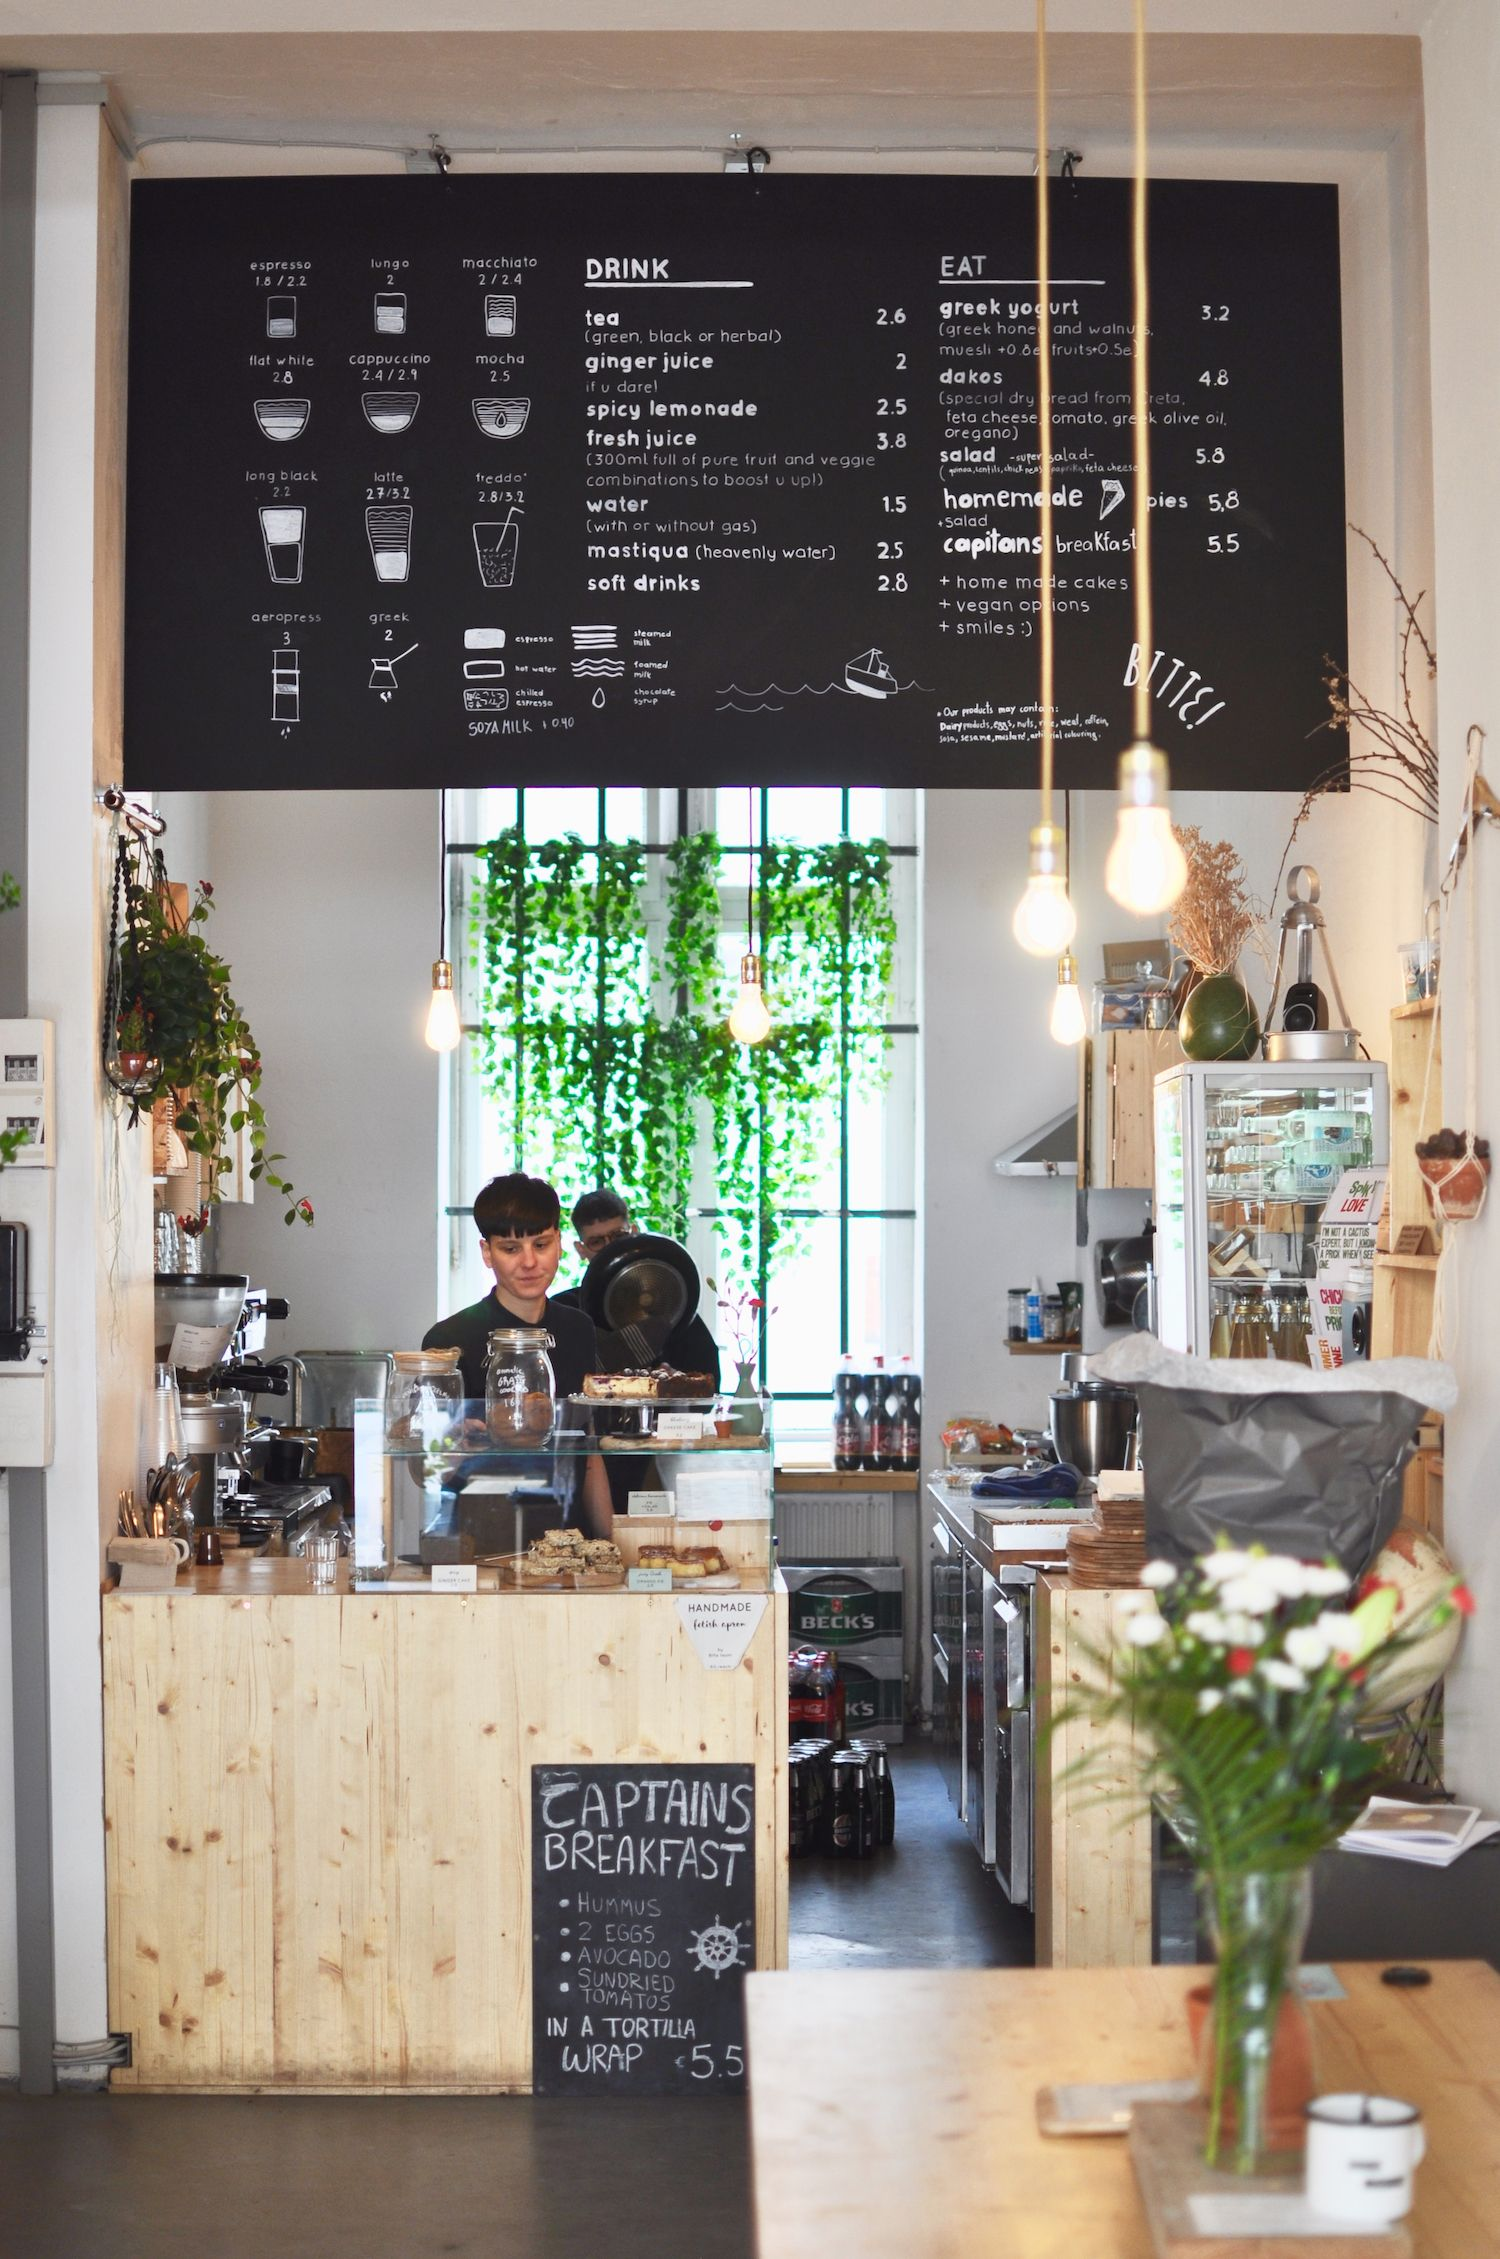 Esszimmer Aurich Speisekarte Berlin Travel Coffee Guide Berlin Pinterest Coffee Shop